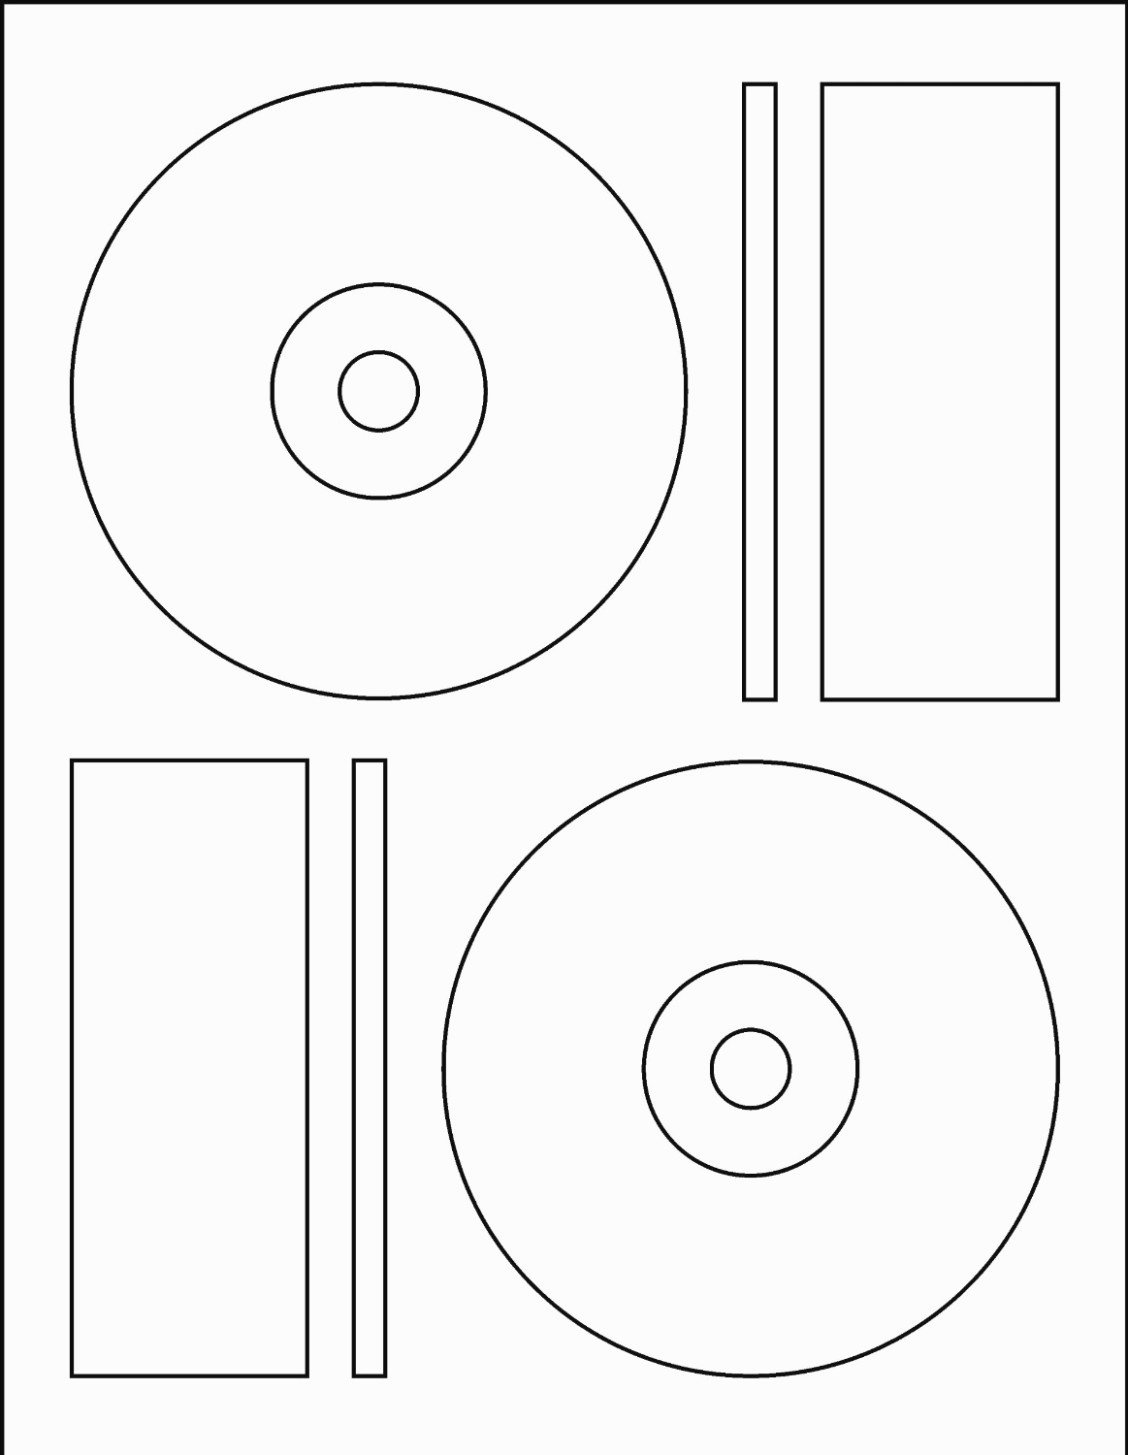 Memorex Cd Label Template Word New 15 Easy Ways to Facilitate